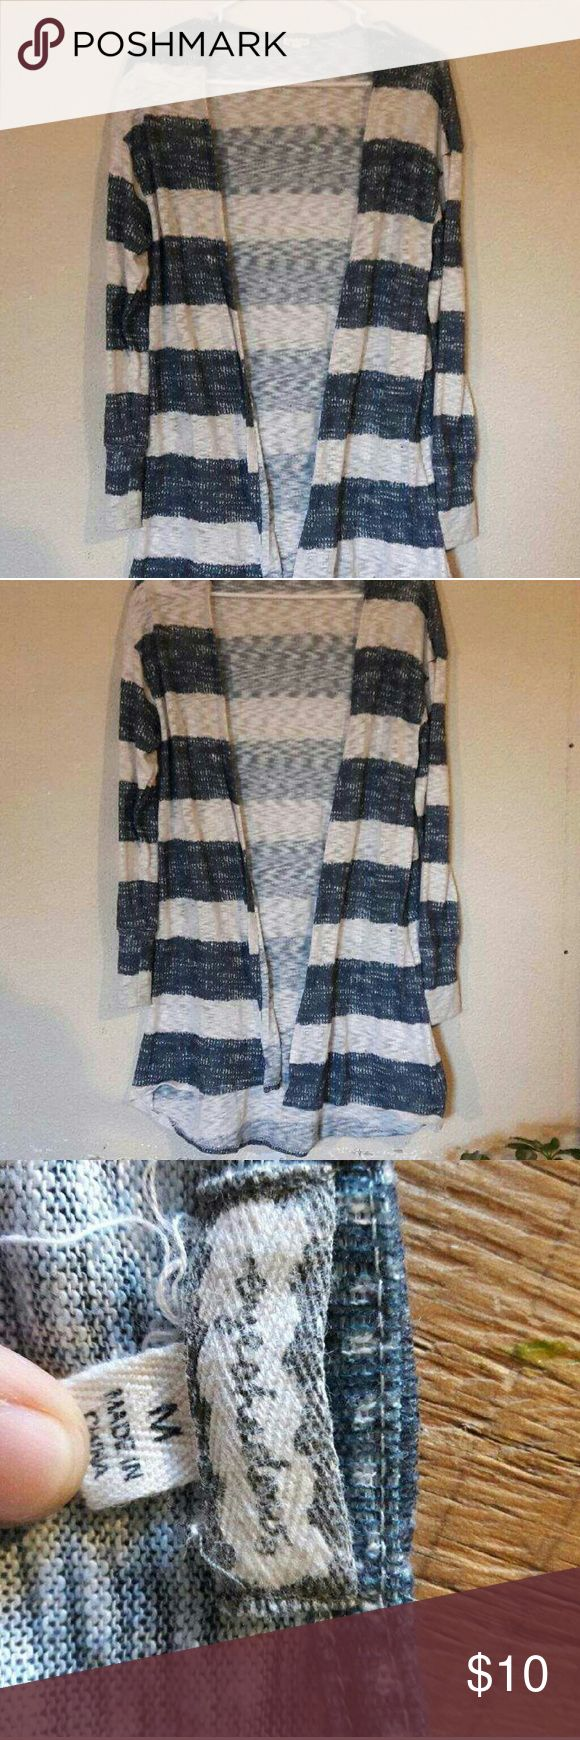 Striped cardigan It's a blue and white cardigan Sweaters Cardigans